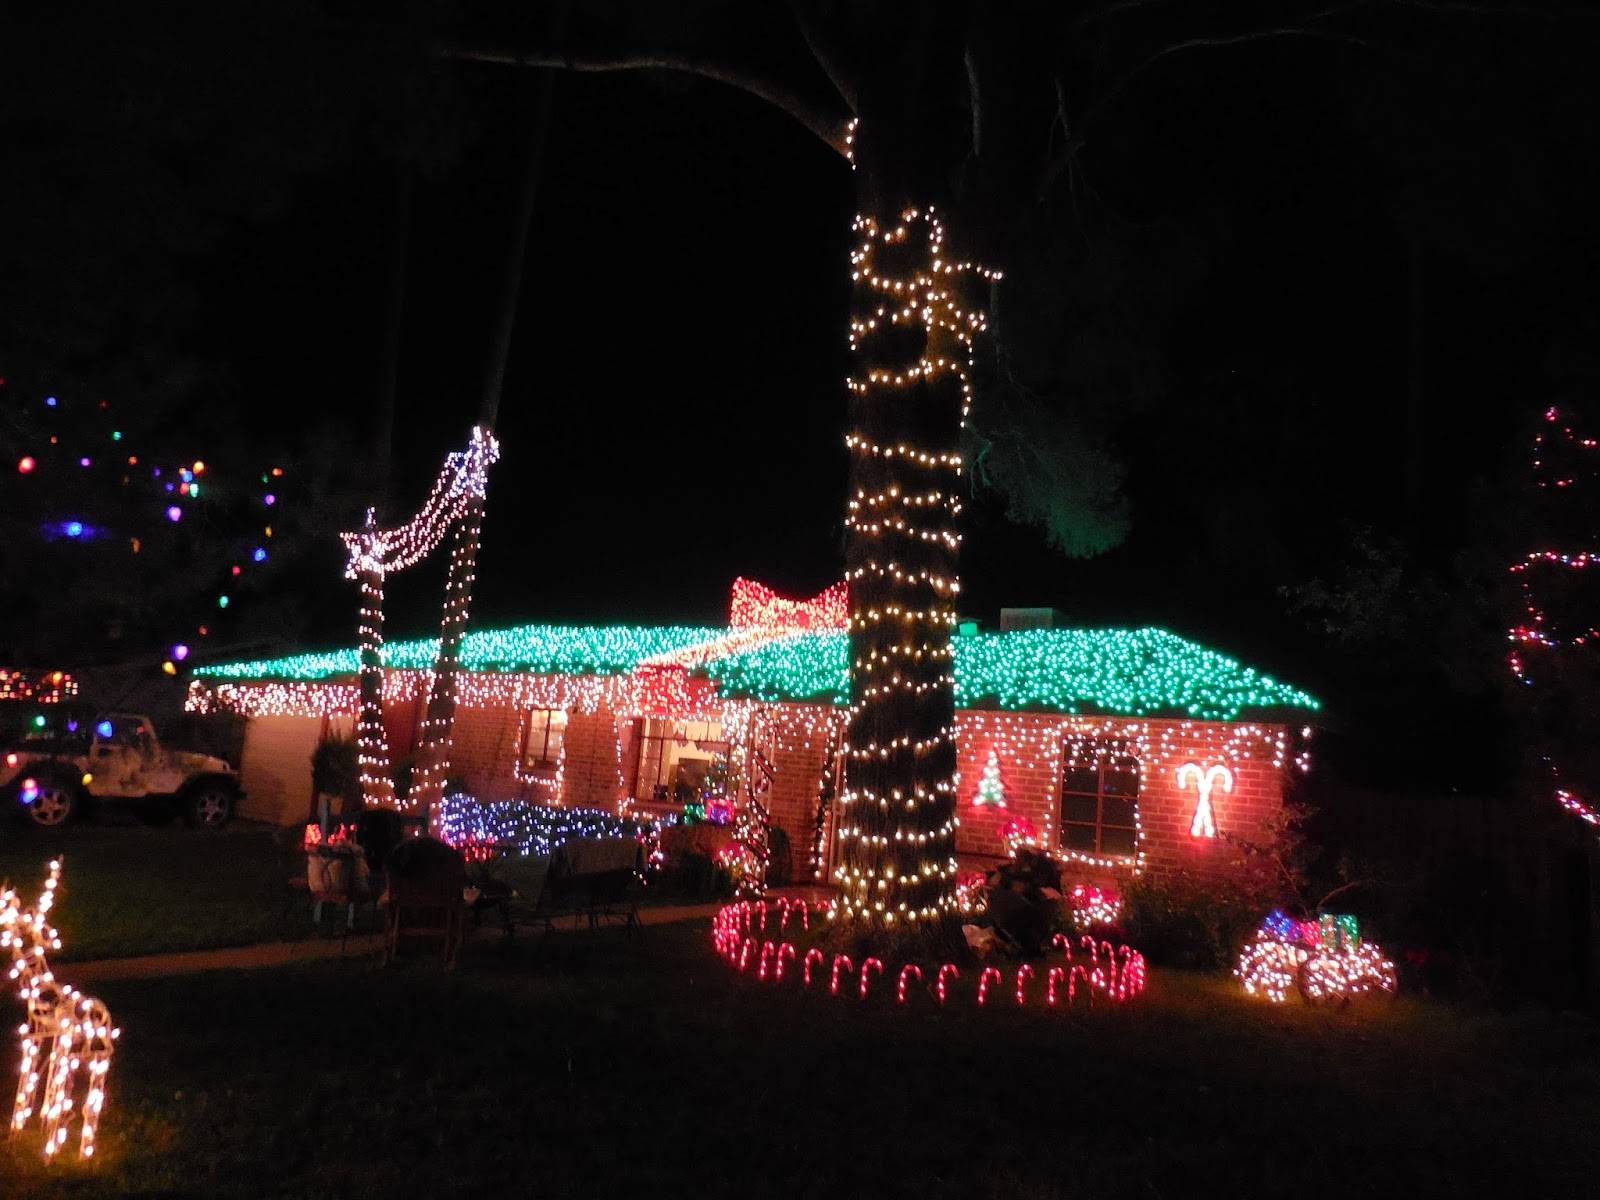 Delightful The Winterhaven Festival Of Lights Is An Annual Christmastime Tradition In  Tucson, Arizona. Every Year Residents In The Winterhaven Neighborhood Have  ...